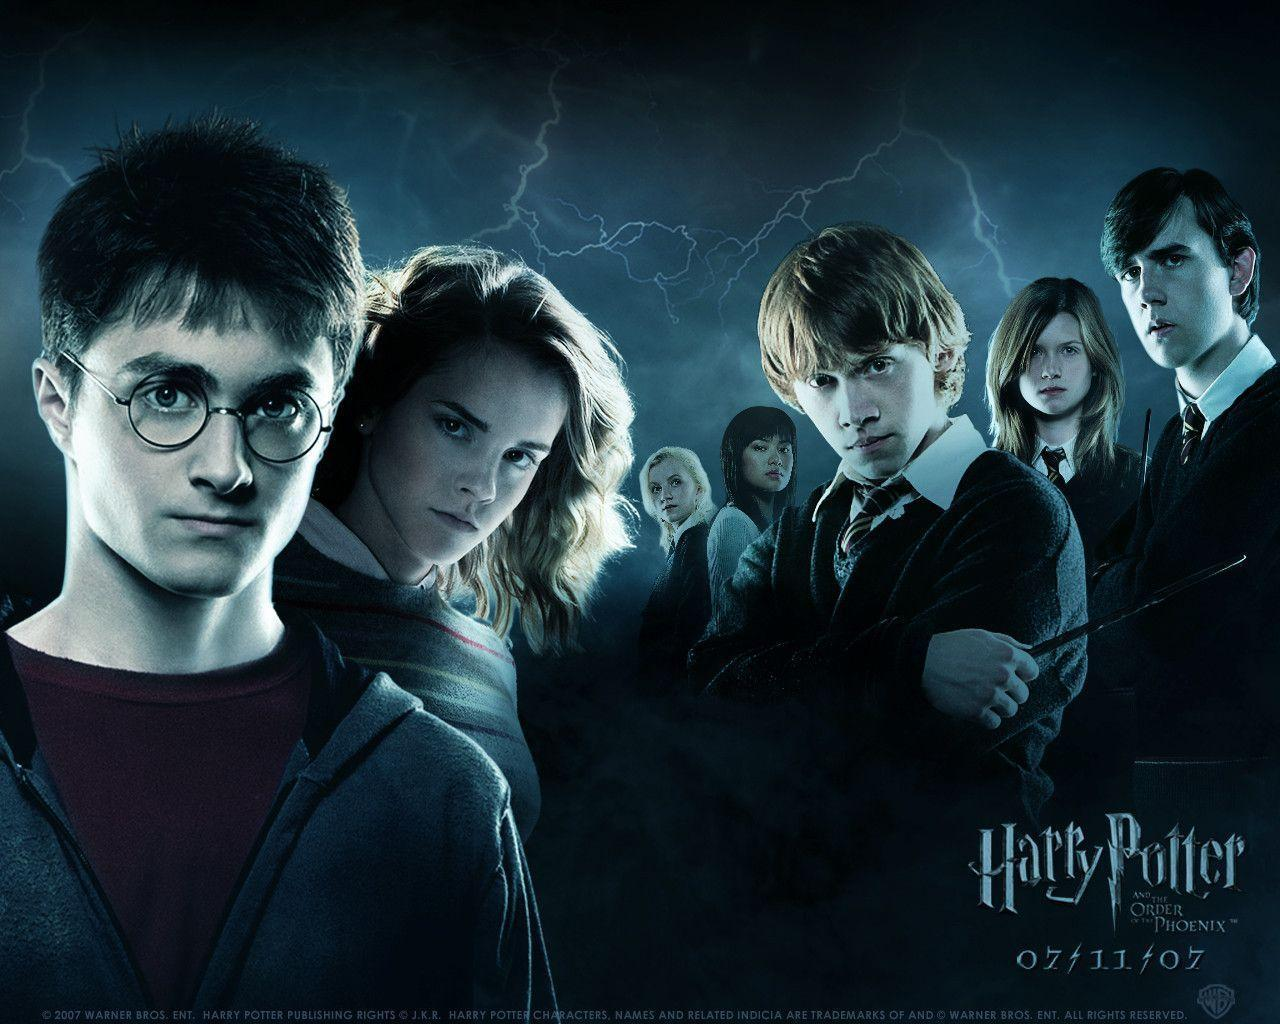 Beautiful Wallpaper Harry Potter Android Phone - sgmhh2E  Graphic_742989.jpg